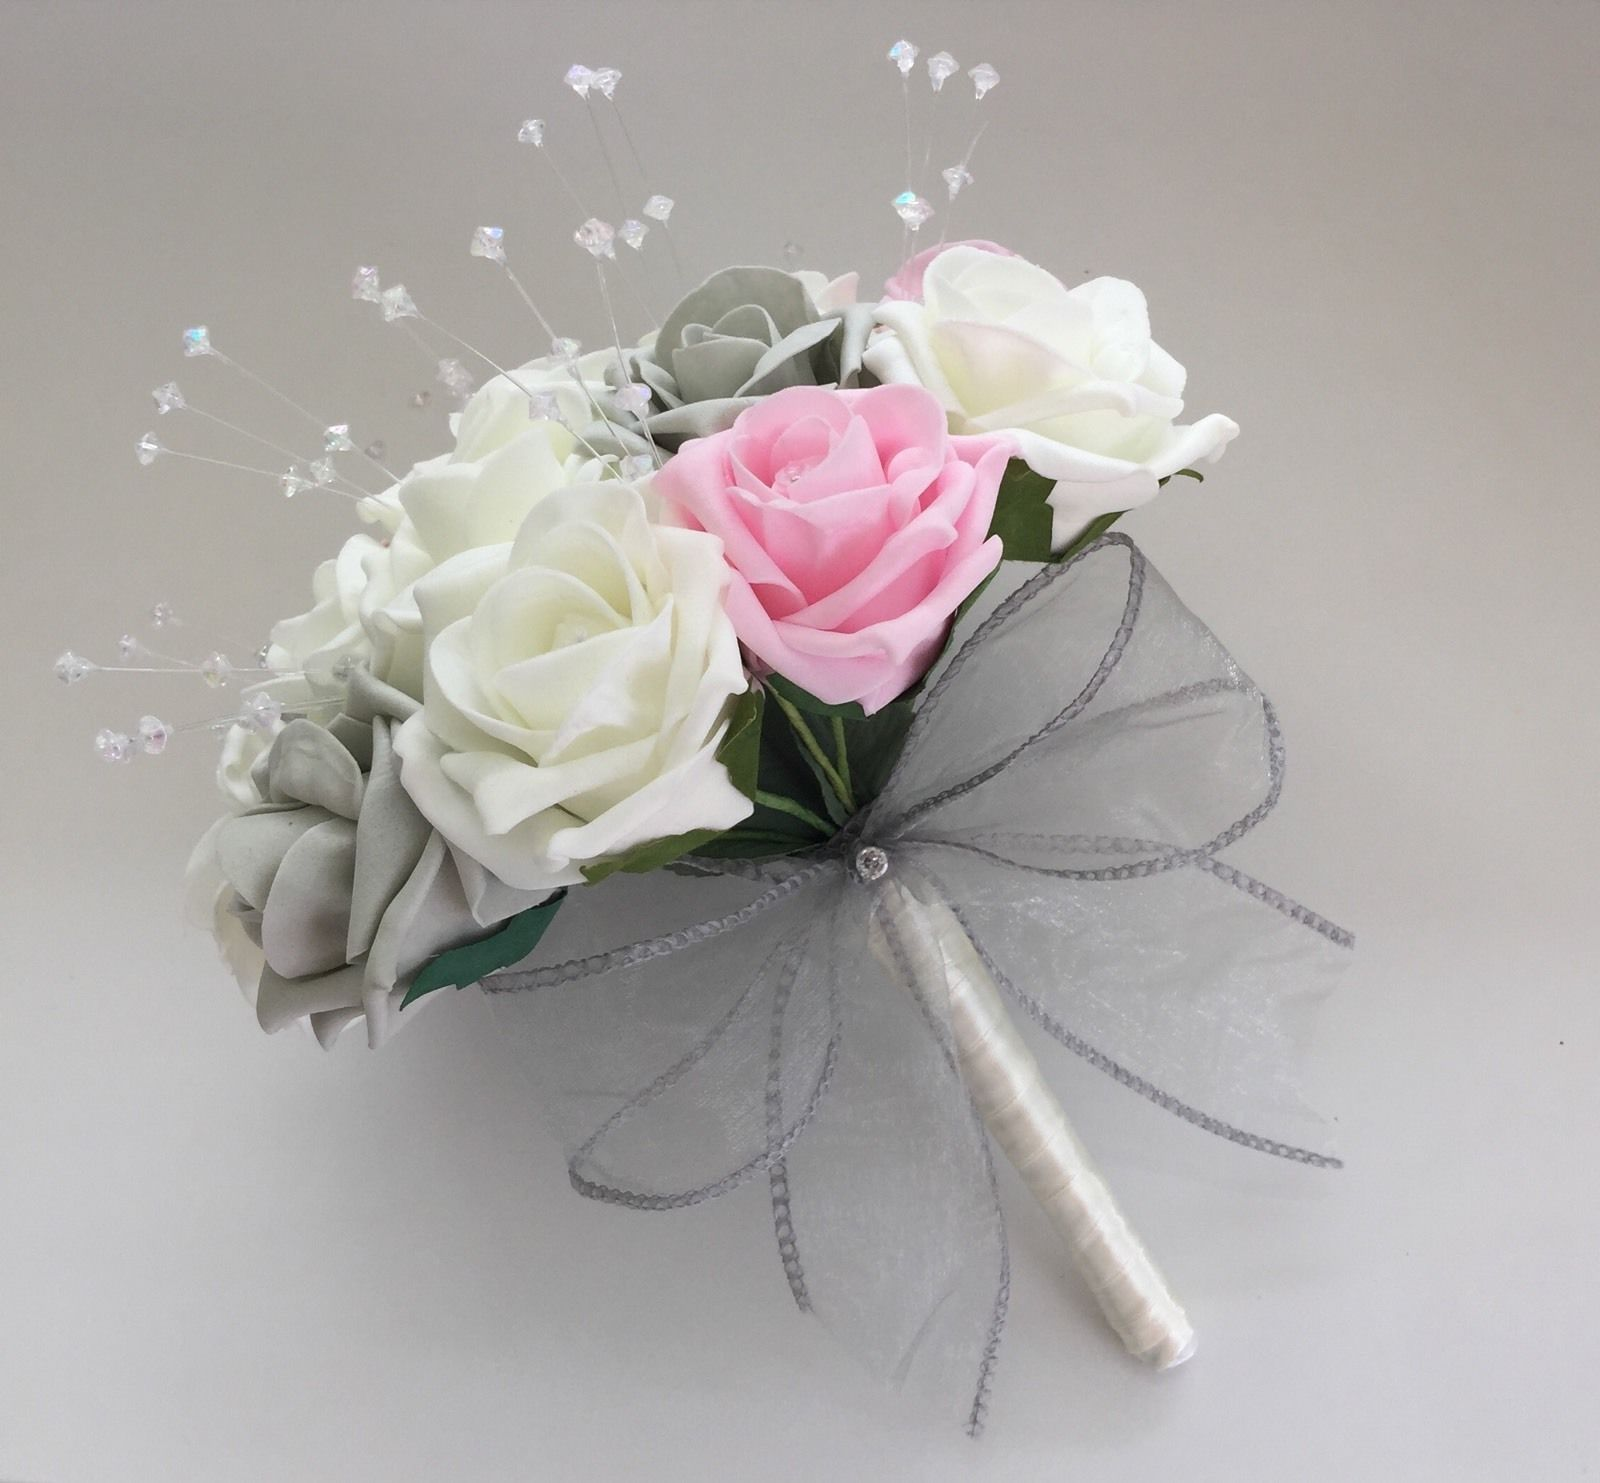 ARTIFICIAL WEDDING FLOWERS PINK IVORY SILVER GREY ROSE BRIDES BOUQUETS